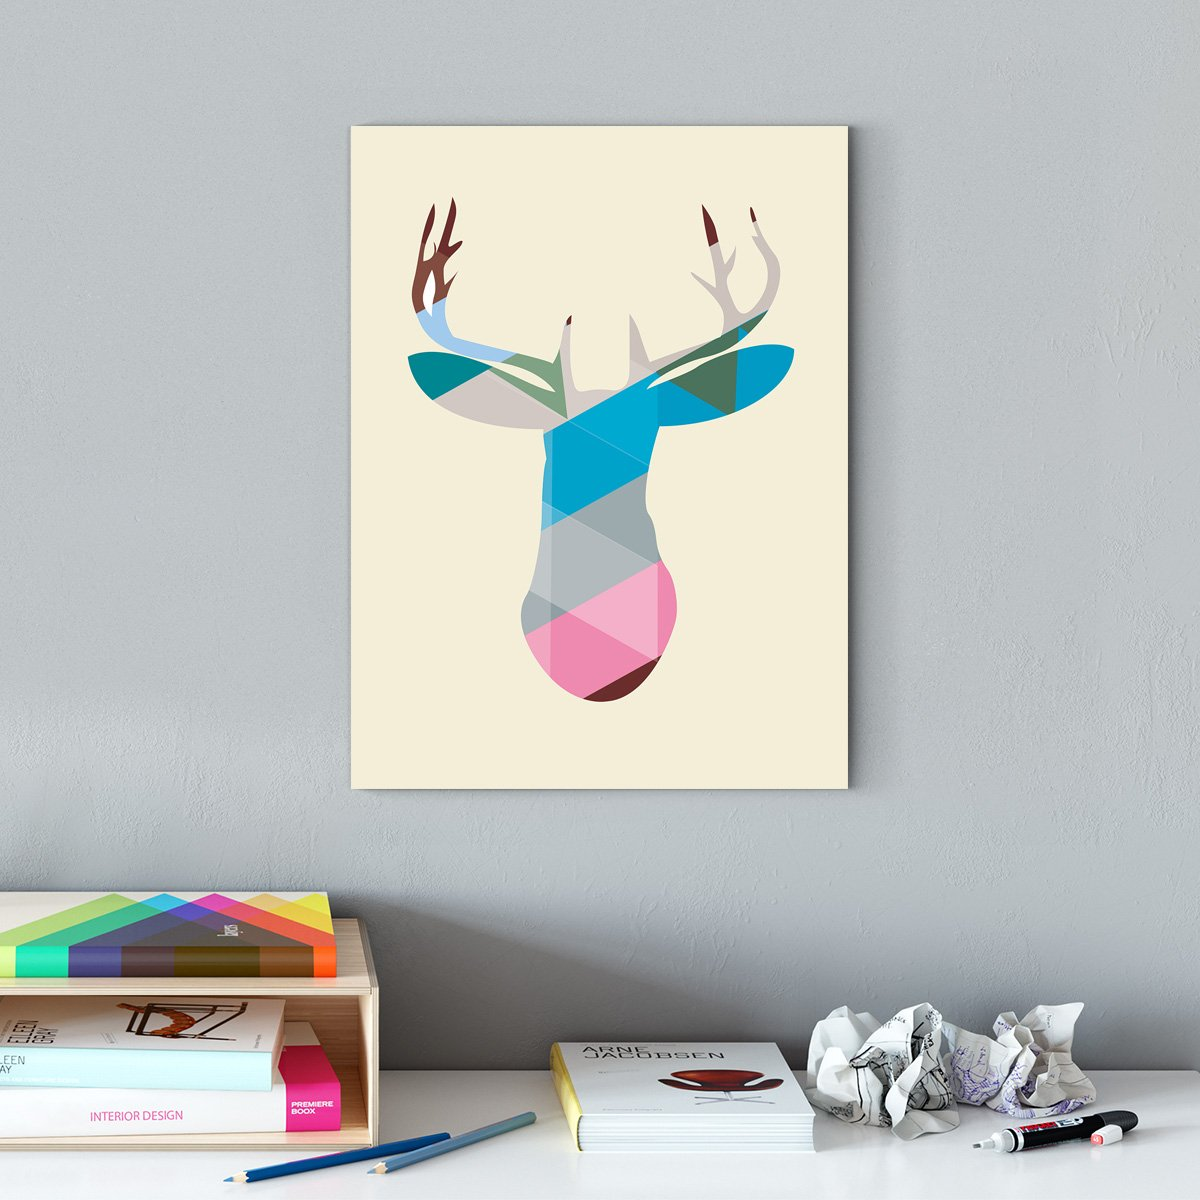 Simple and lovely wind - abstract decorative painting - living room - colorful block deer